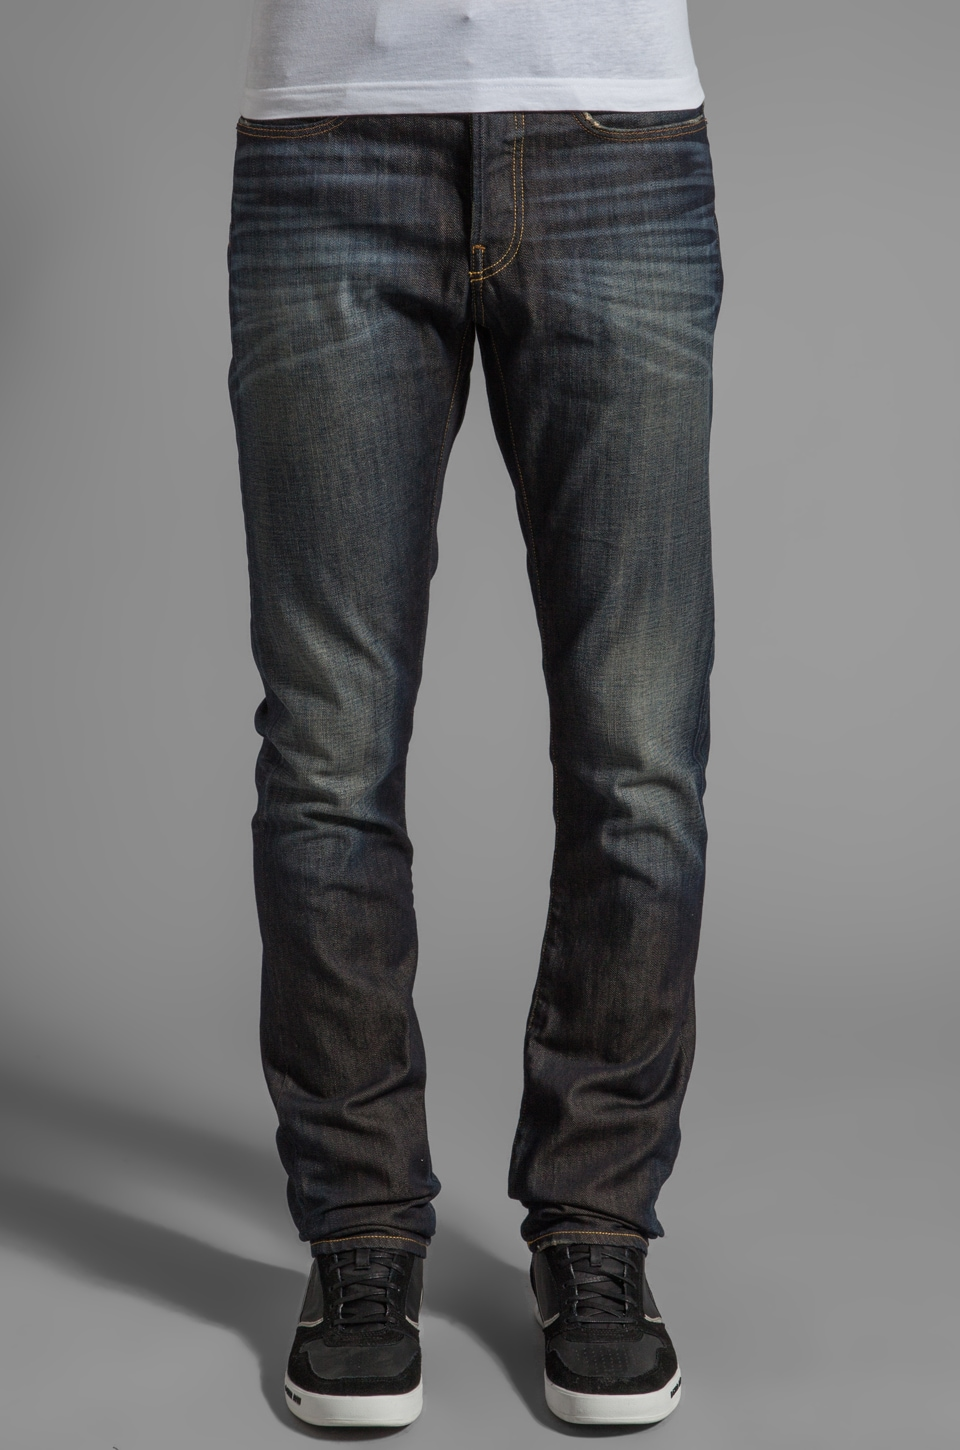 G-Star 3301 Slim in Fall Denim Vintage Aged